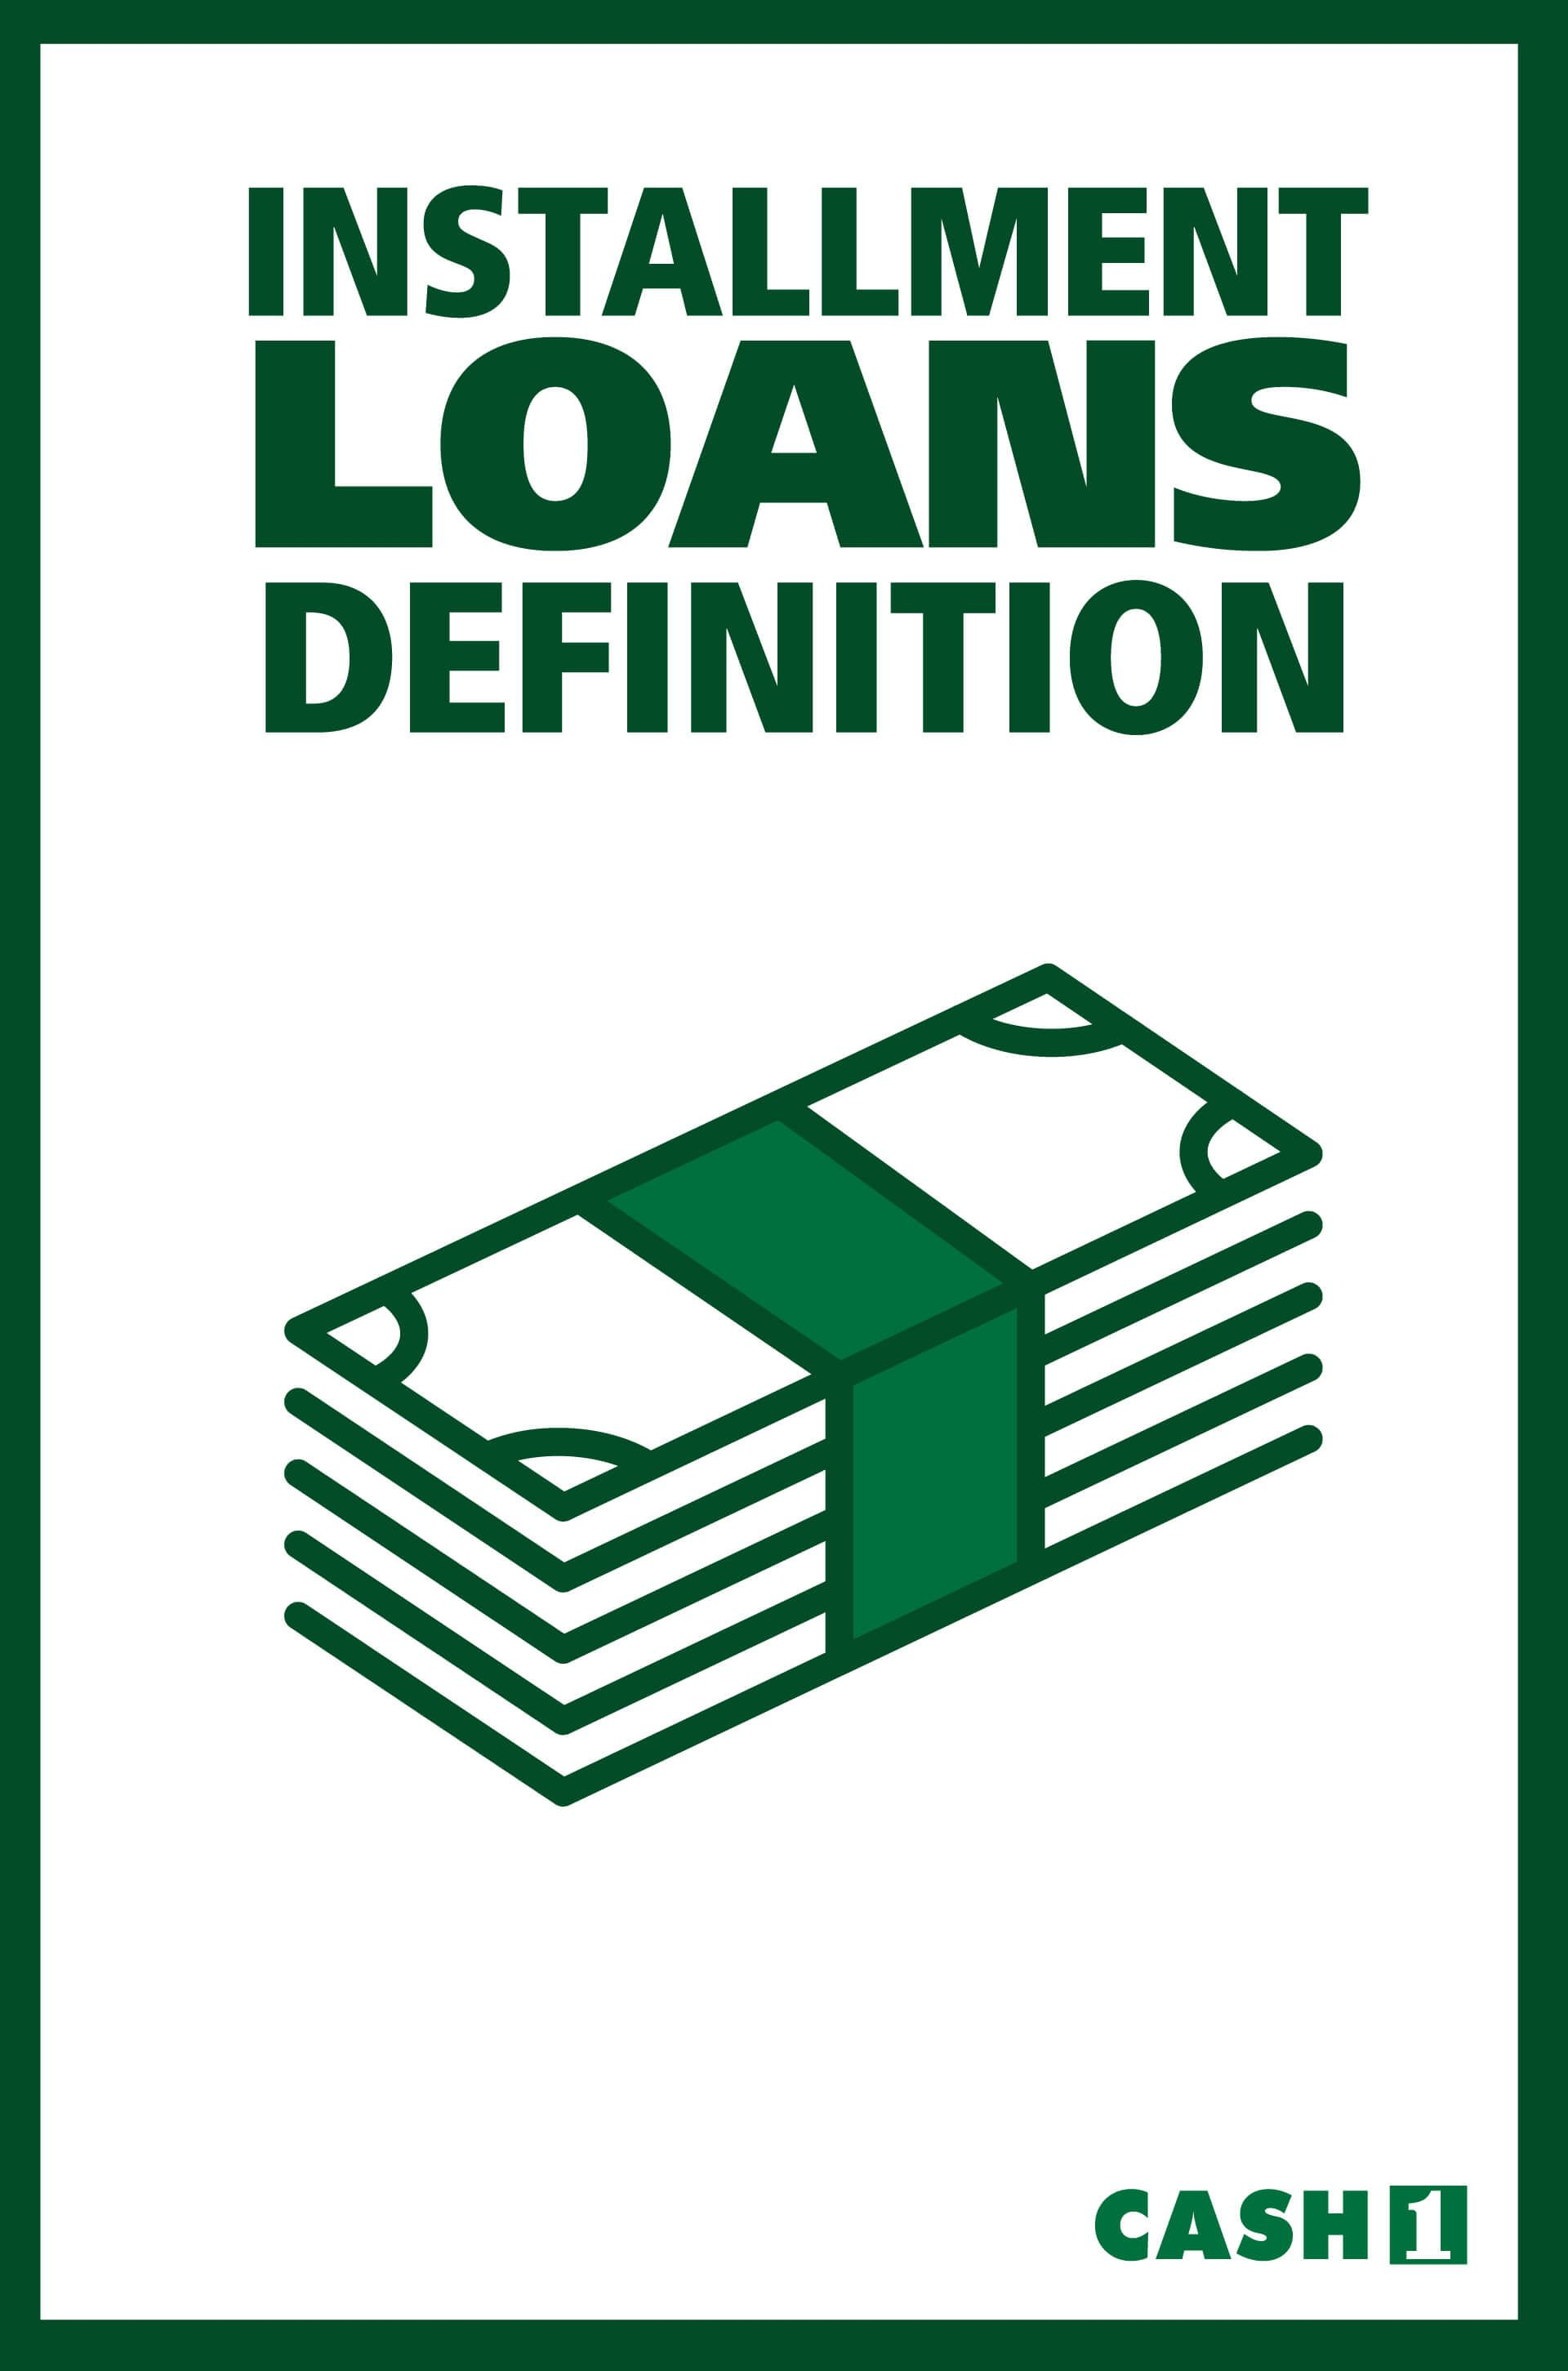 Installment Loan Definition Any Loan That Is Repaid Over Time With A Set Number Of Regularly Scheduled Payments Car L Installment Loans Car Loans Definitions